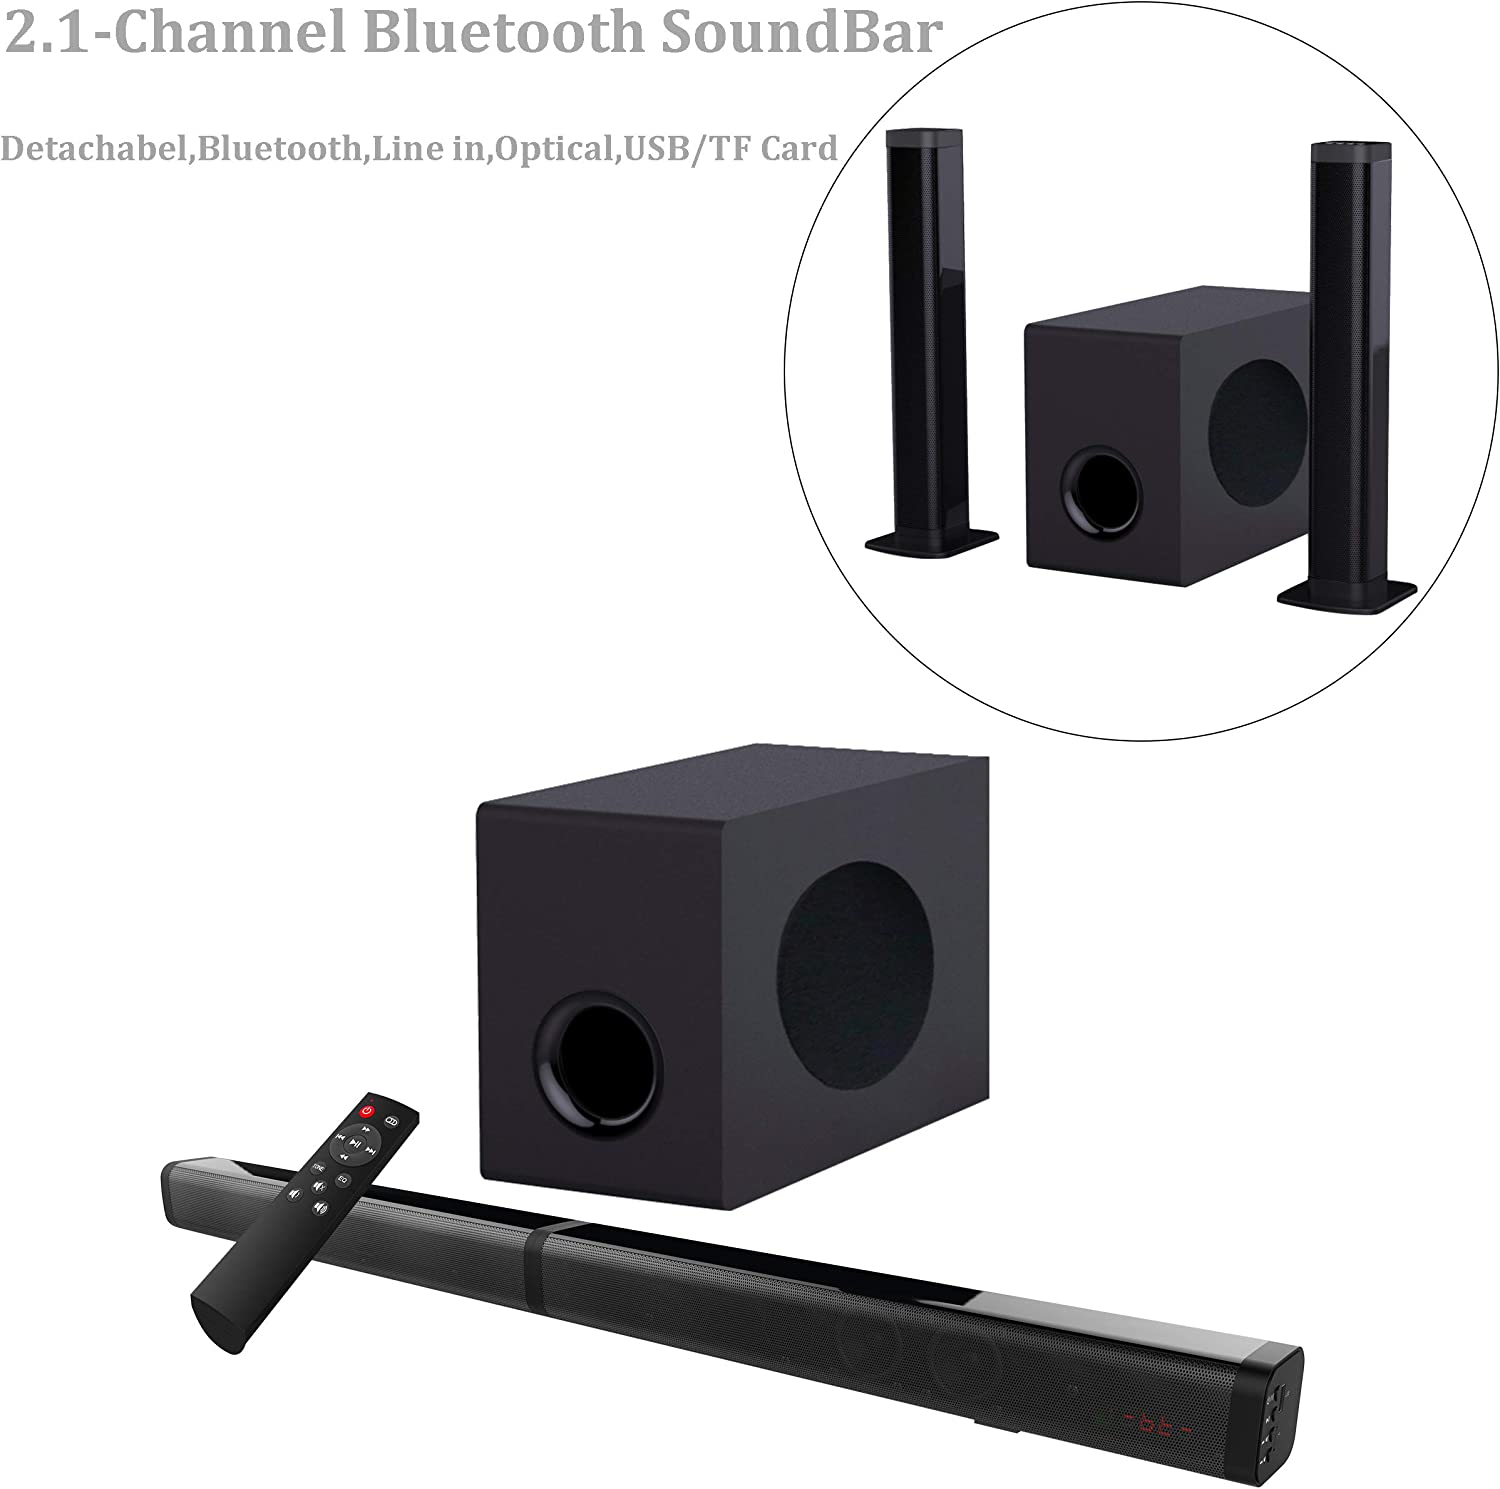 Sound Bar with Subwoofer, Samtronic Detachable Soundbar for TVS 37inch 80W 2.1 Channel Soundbar Speakers with Bluetooth V5.0 Sound Bars, Surround Sound Home Theater, Wall Mountable Remote Control